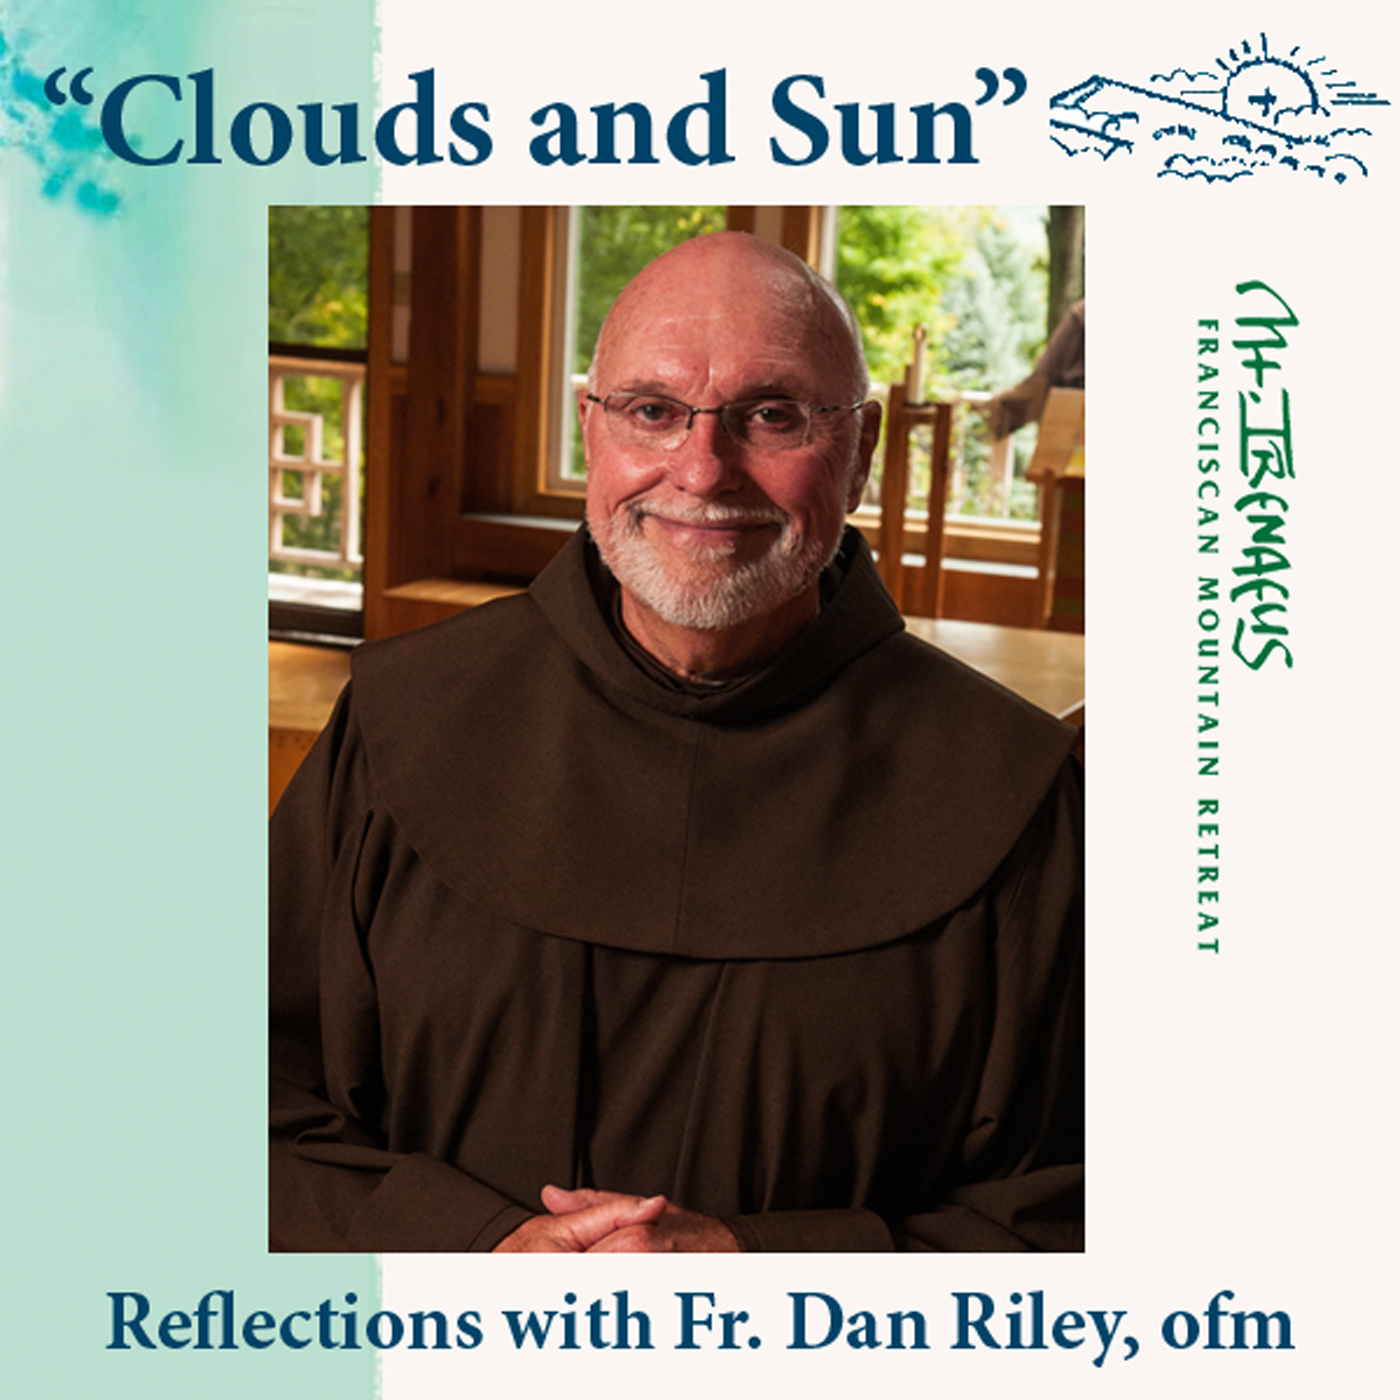 Fr. Dan Riley: Clouds and Sun Reflections